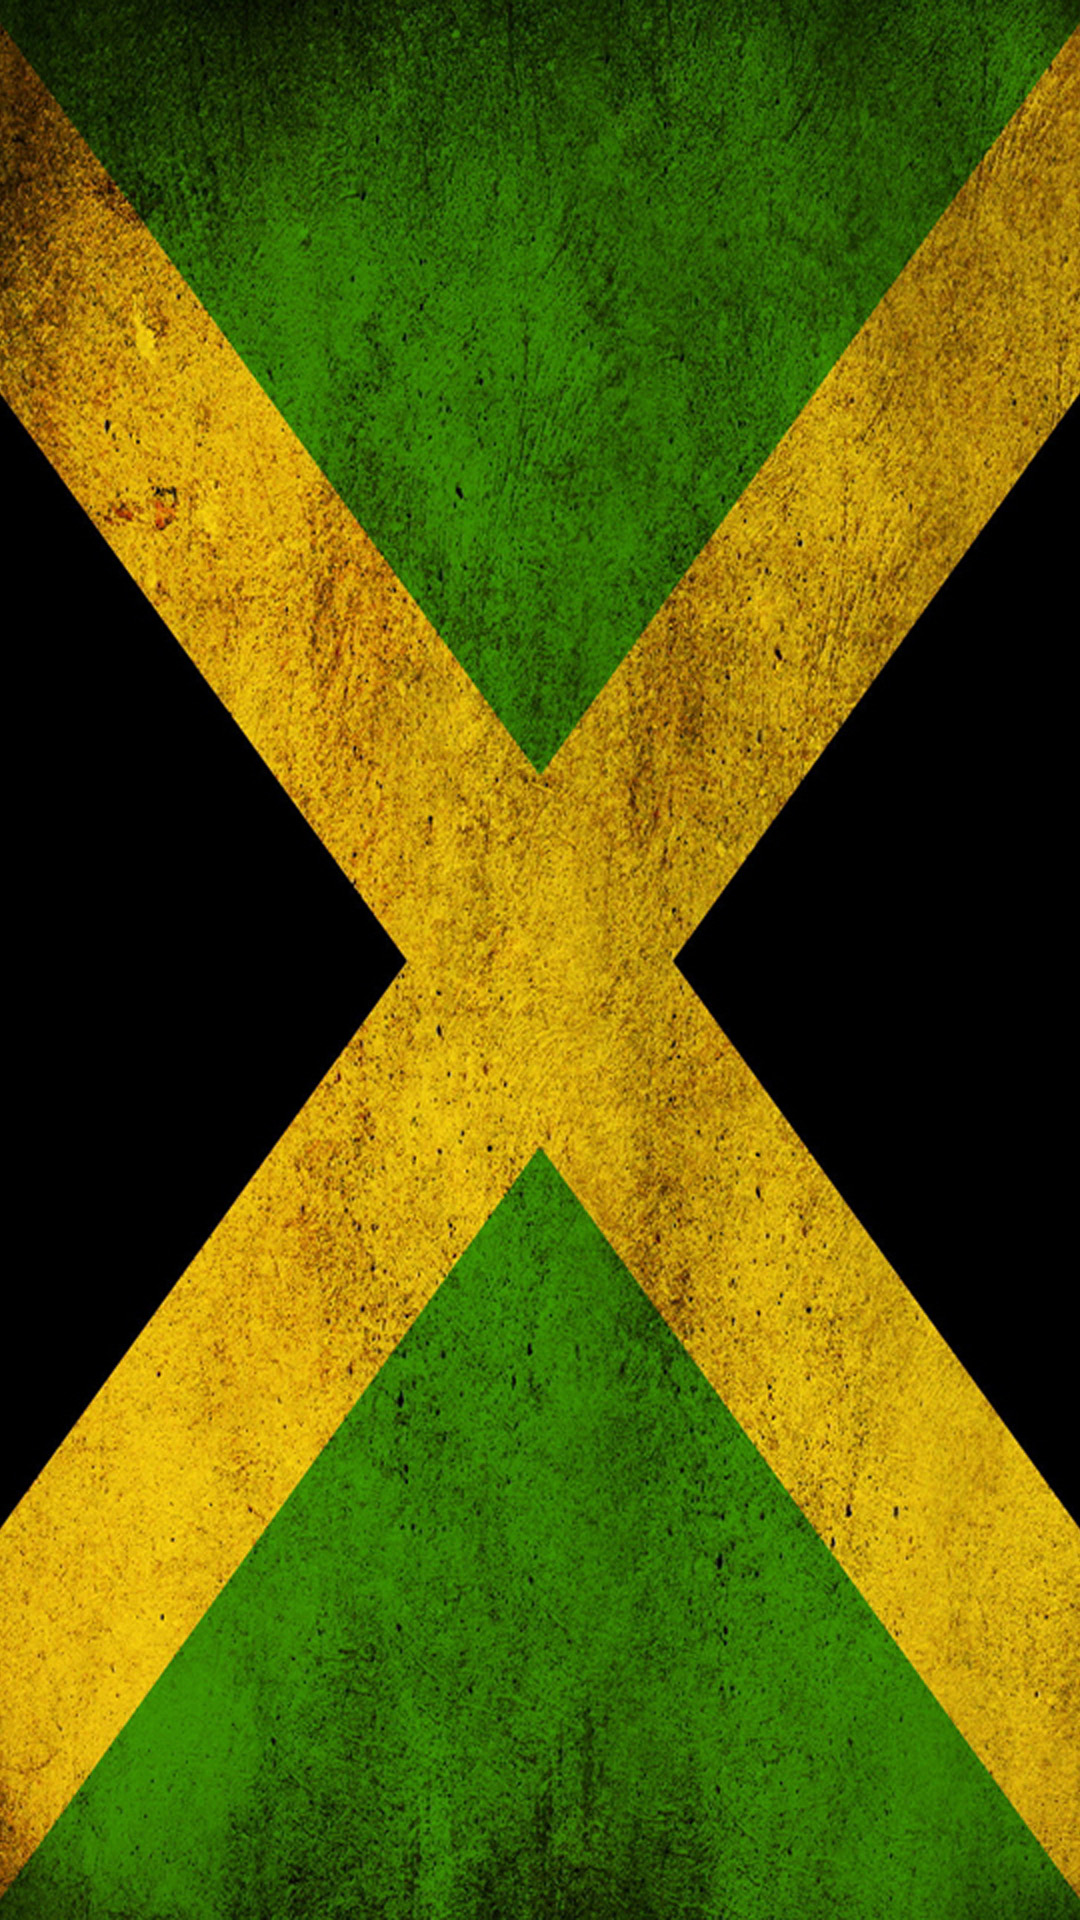 Best Wallpapers 3d Free Download Jamaican Flag Best Htc One Wallpapers Free And Easy To